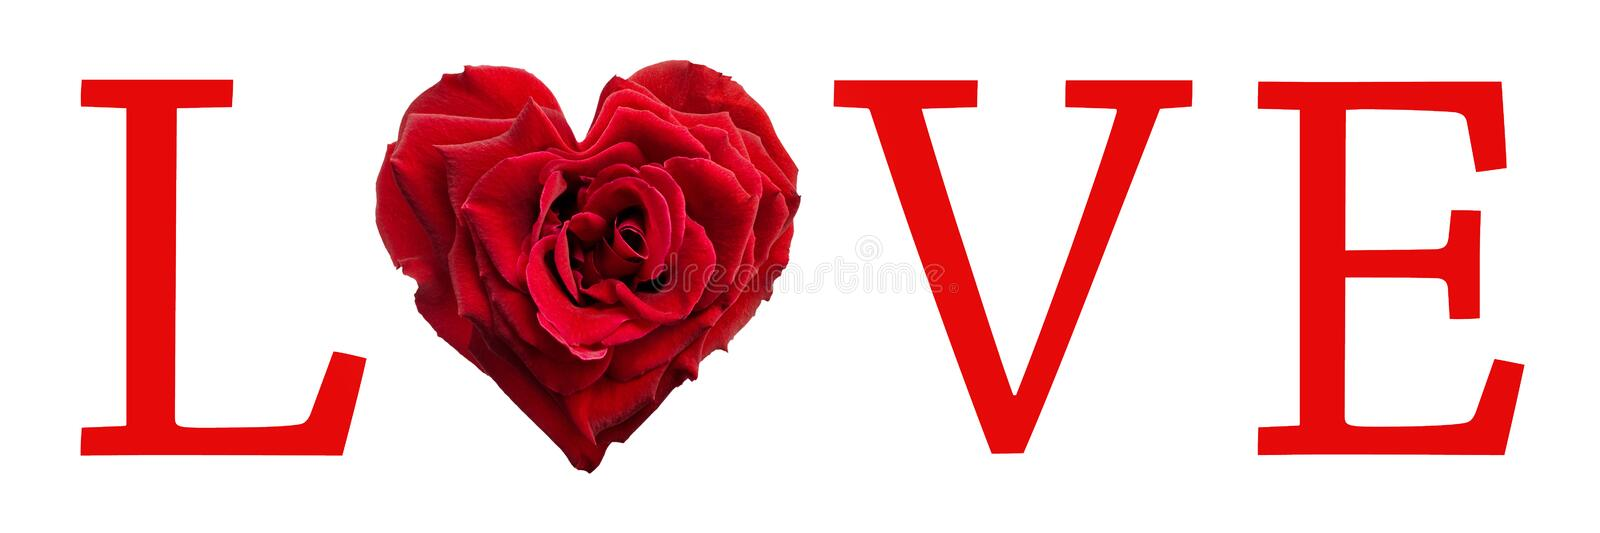 Download Love Word With A Heart Shaped Rose Stock Photo Image Of Love Honeymoon